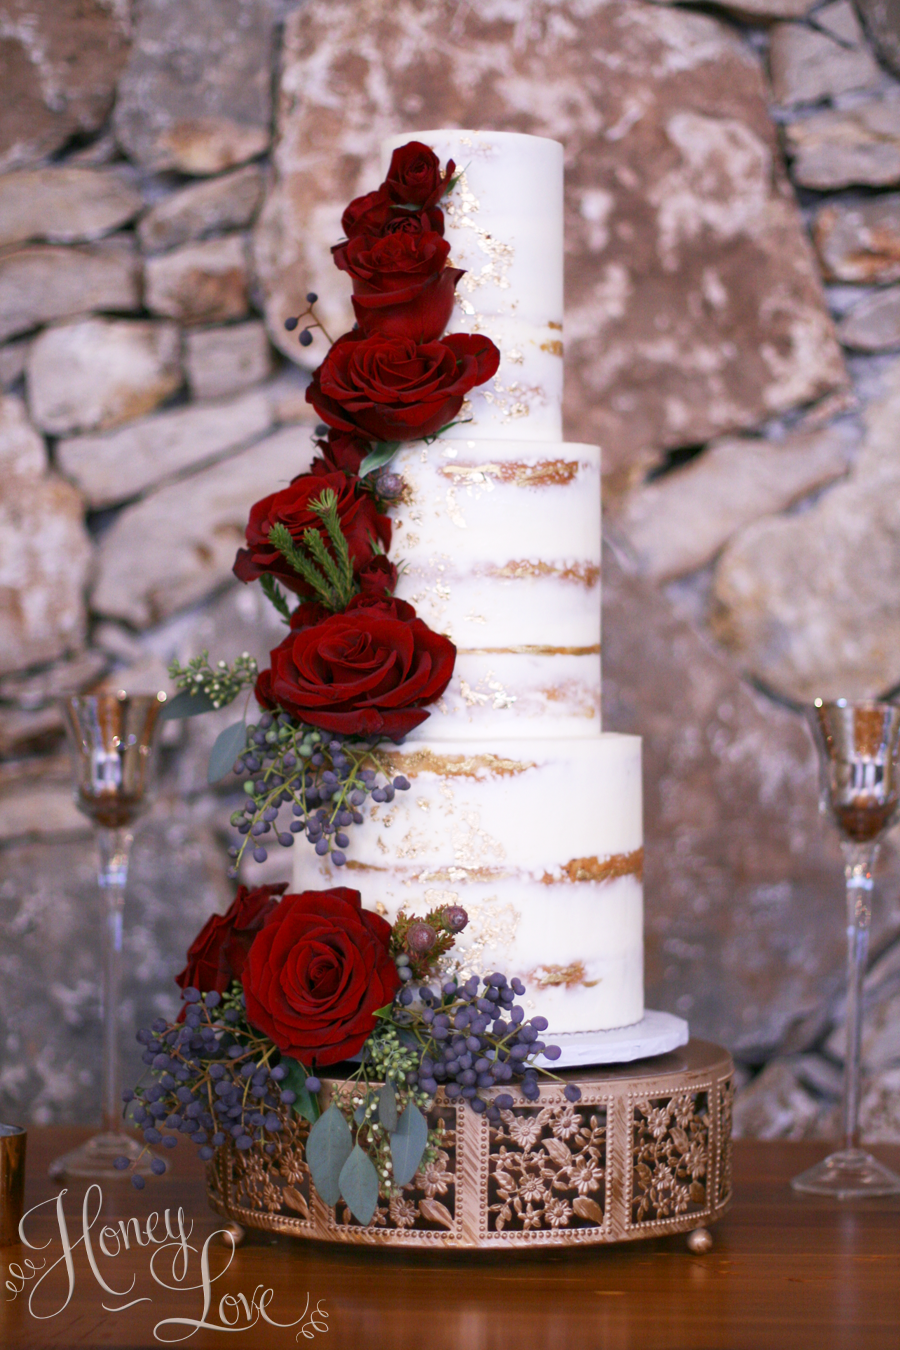 This semi-naked wedding cake is accented with fresh flowers and gold leaf details.